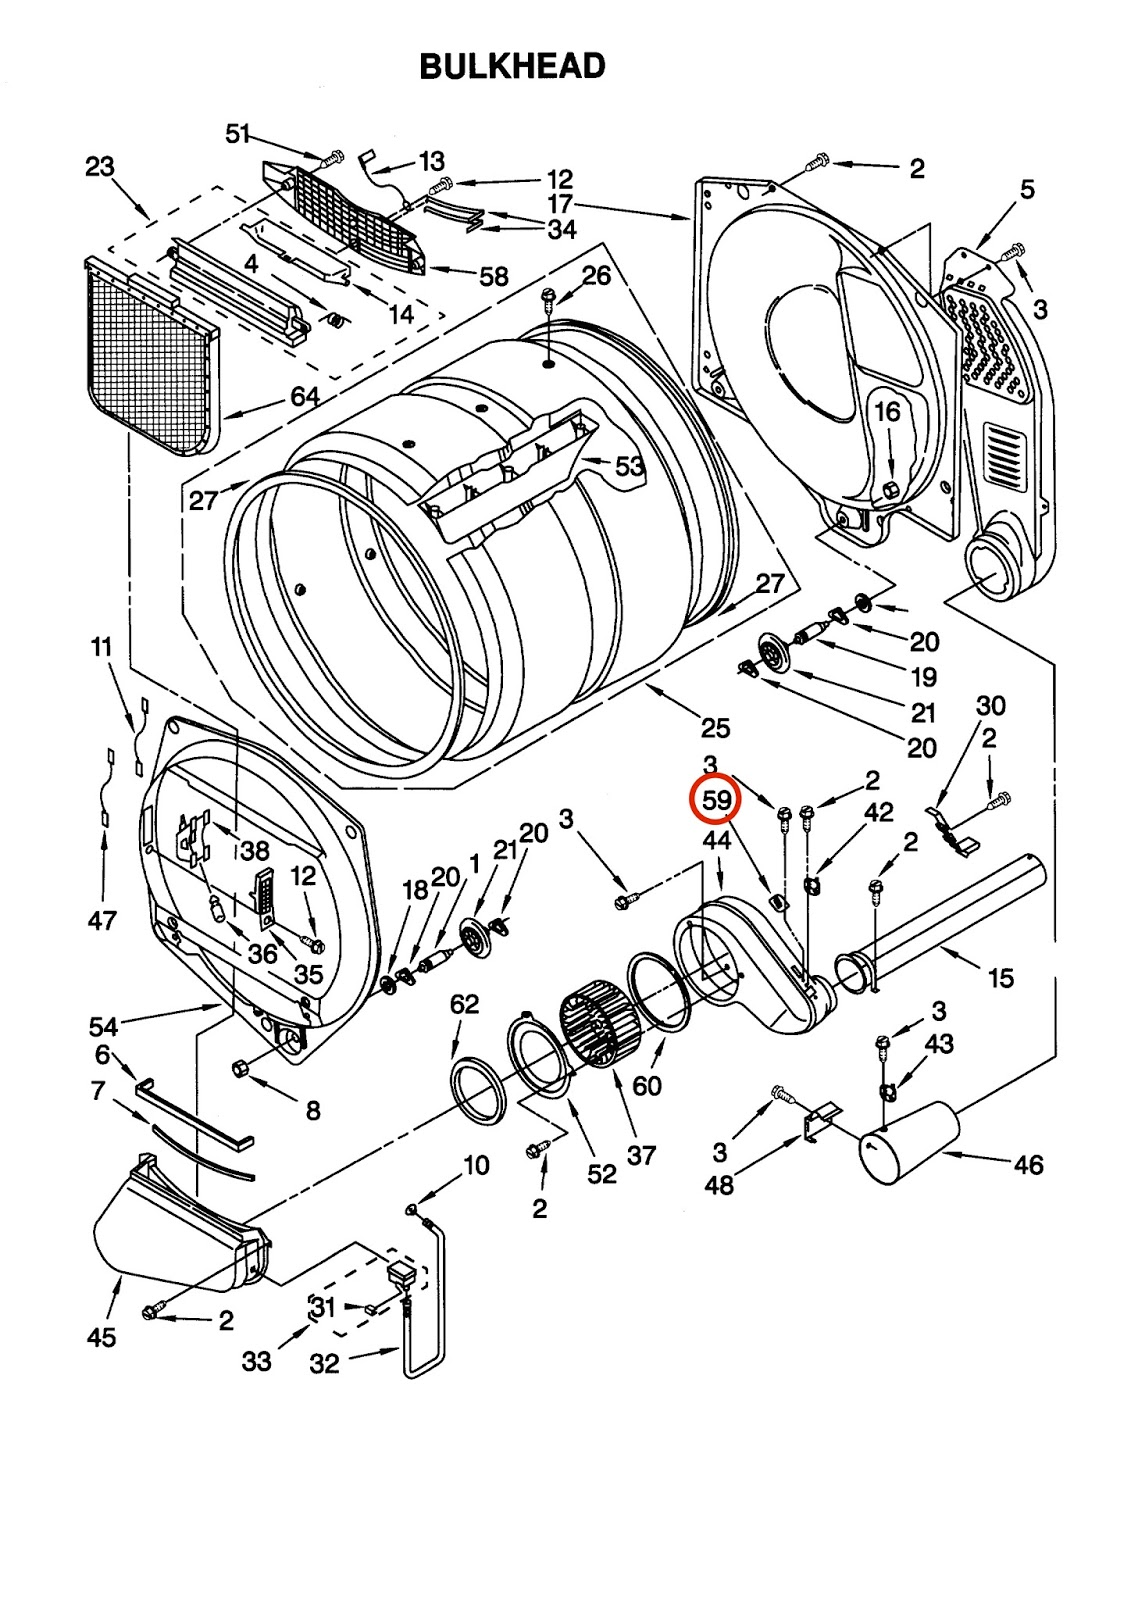 How to Fix a Kenmore 90 Series Gas Dryer That Will Not